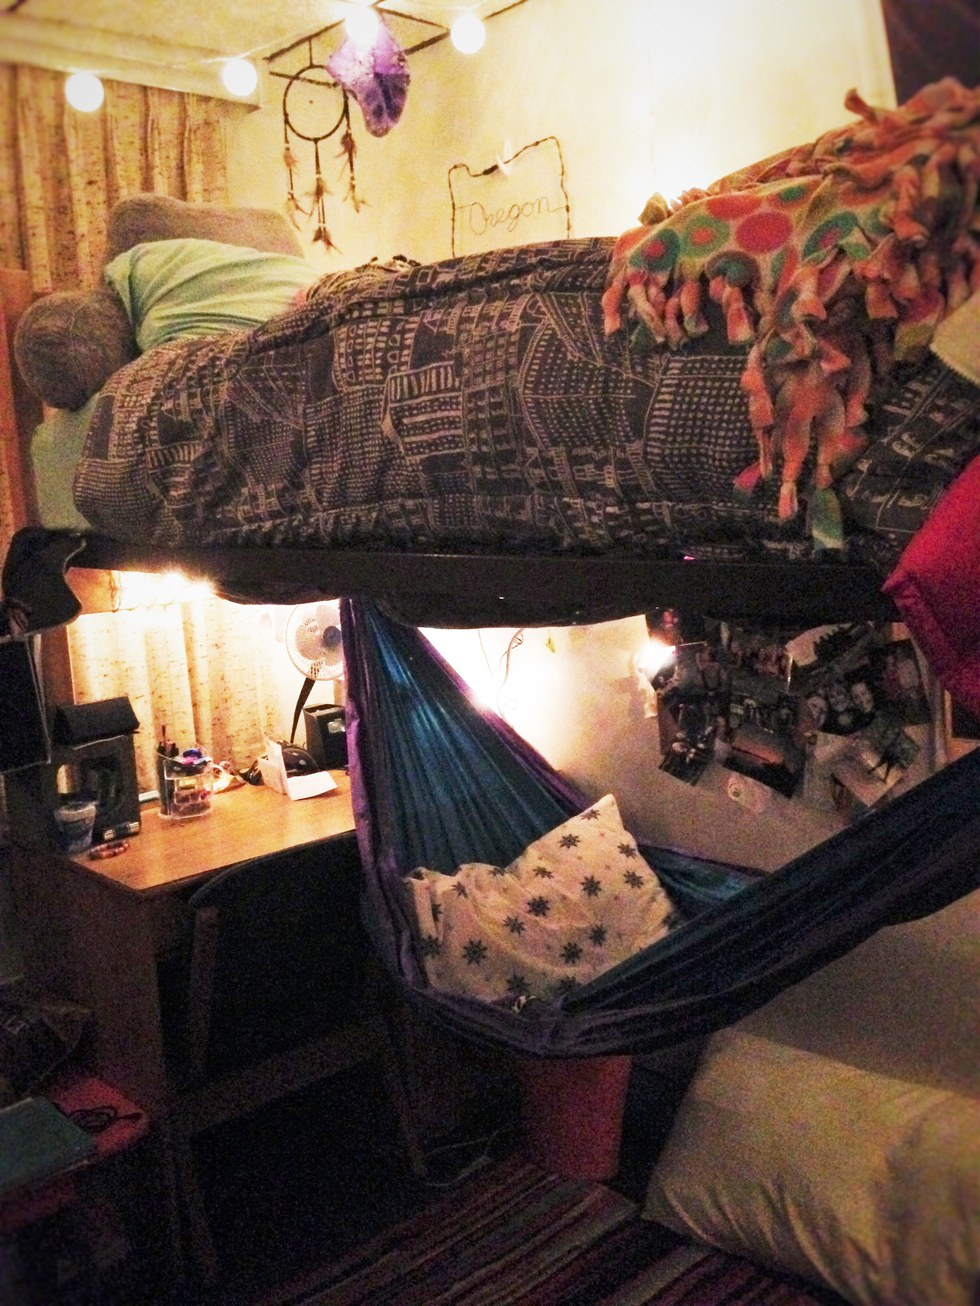 11 Ways To Make The Most Of Your Dorm Room: Making The Most Of Your Dorm Room